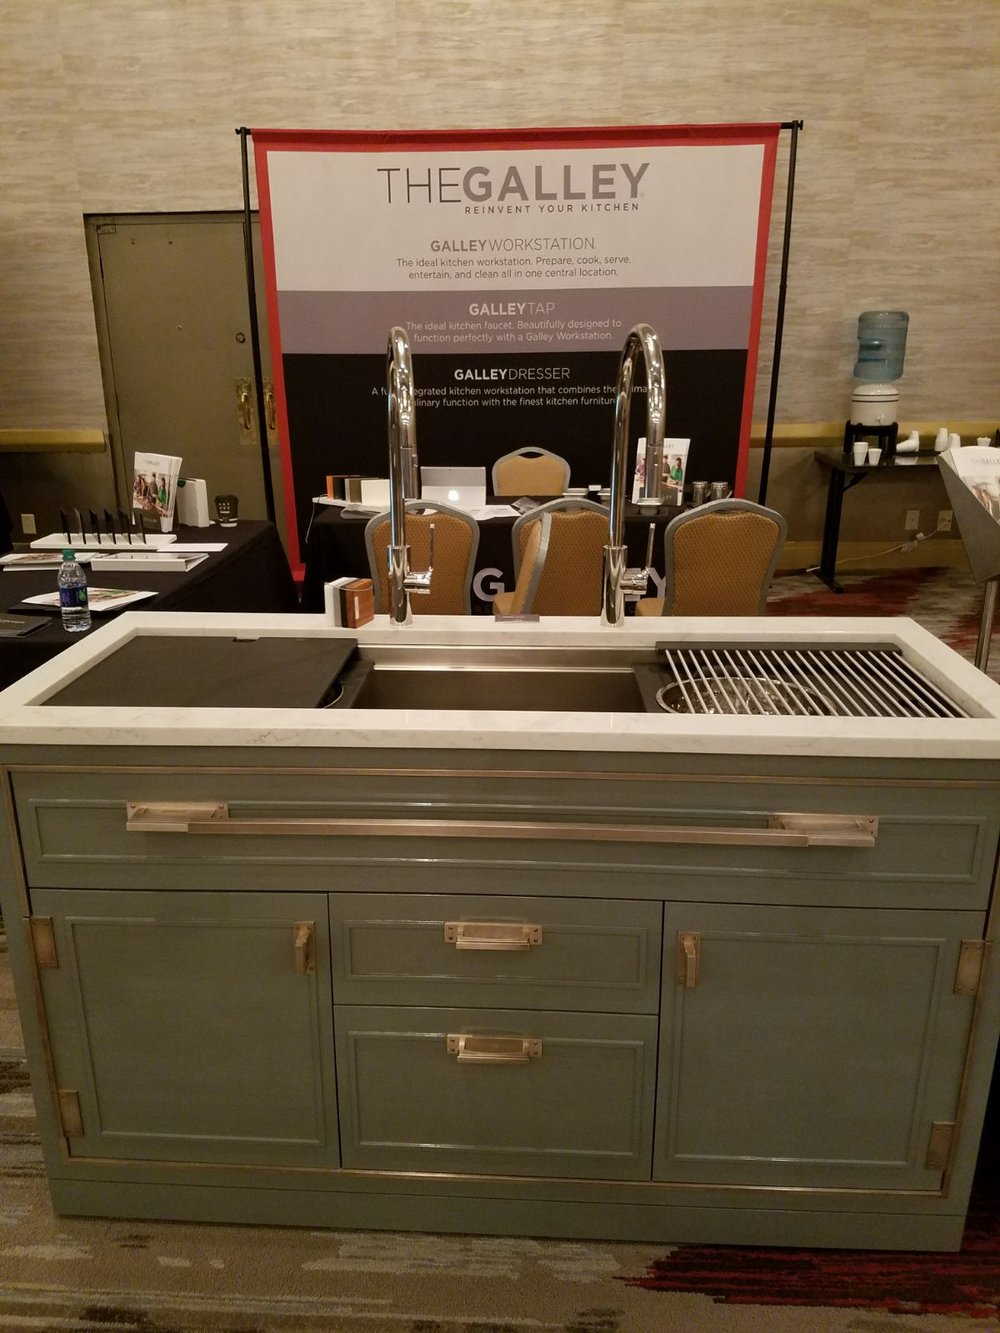 Galley Workstation